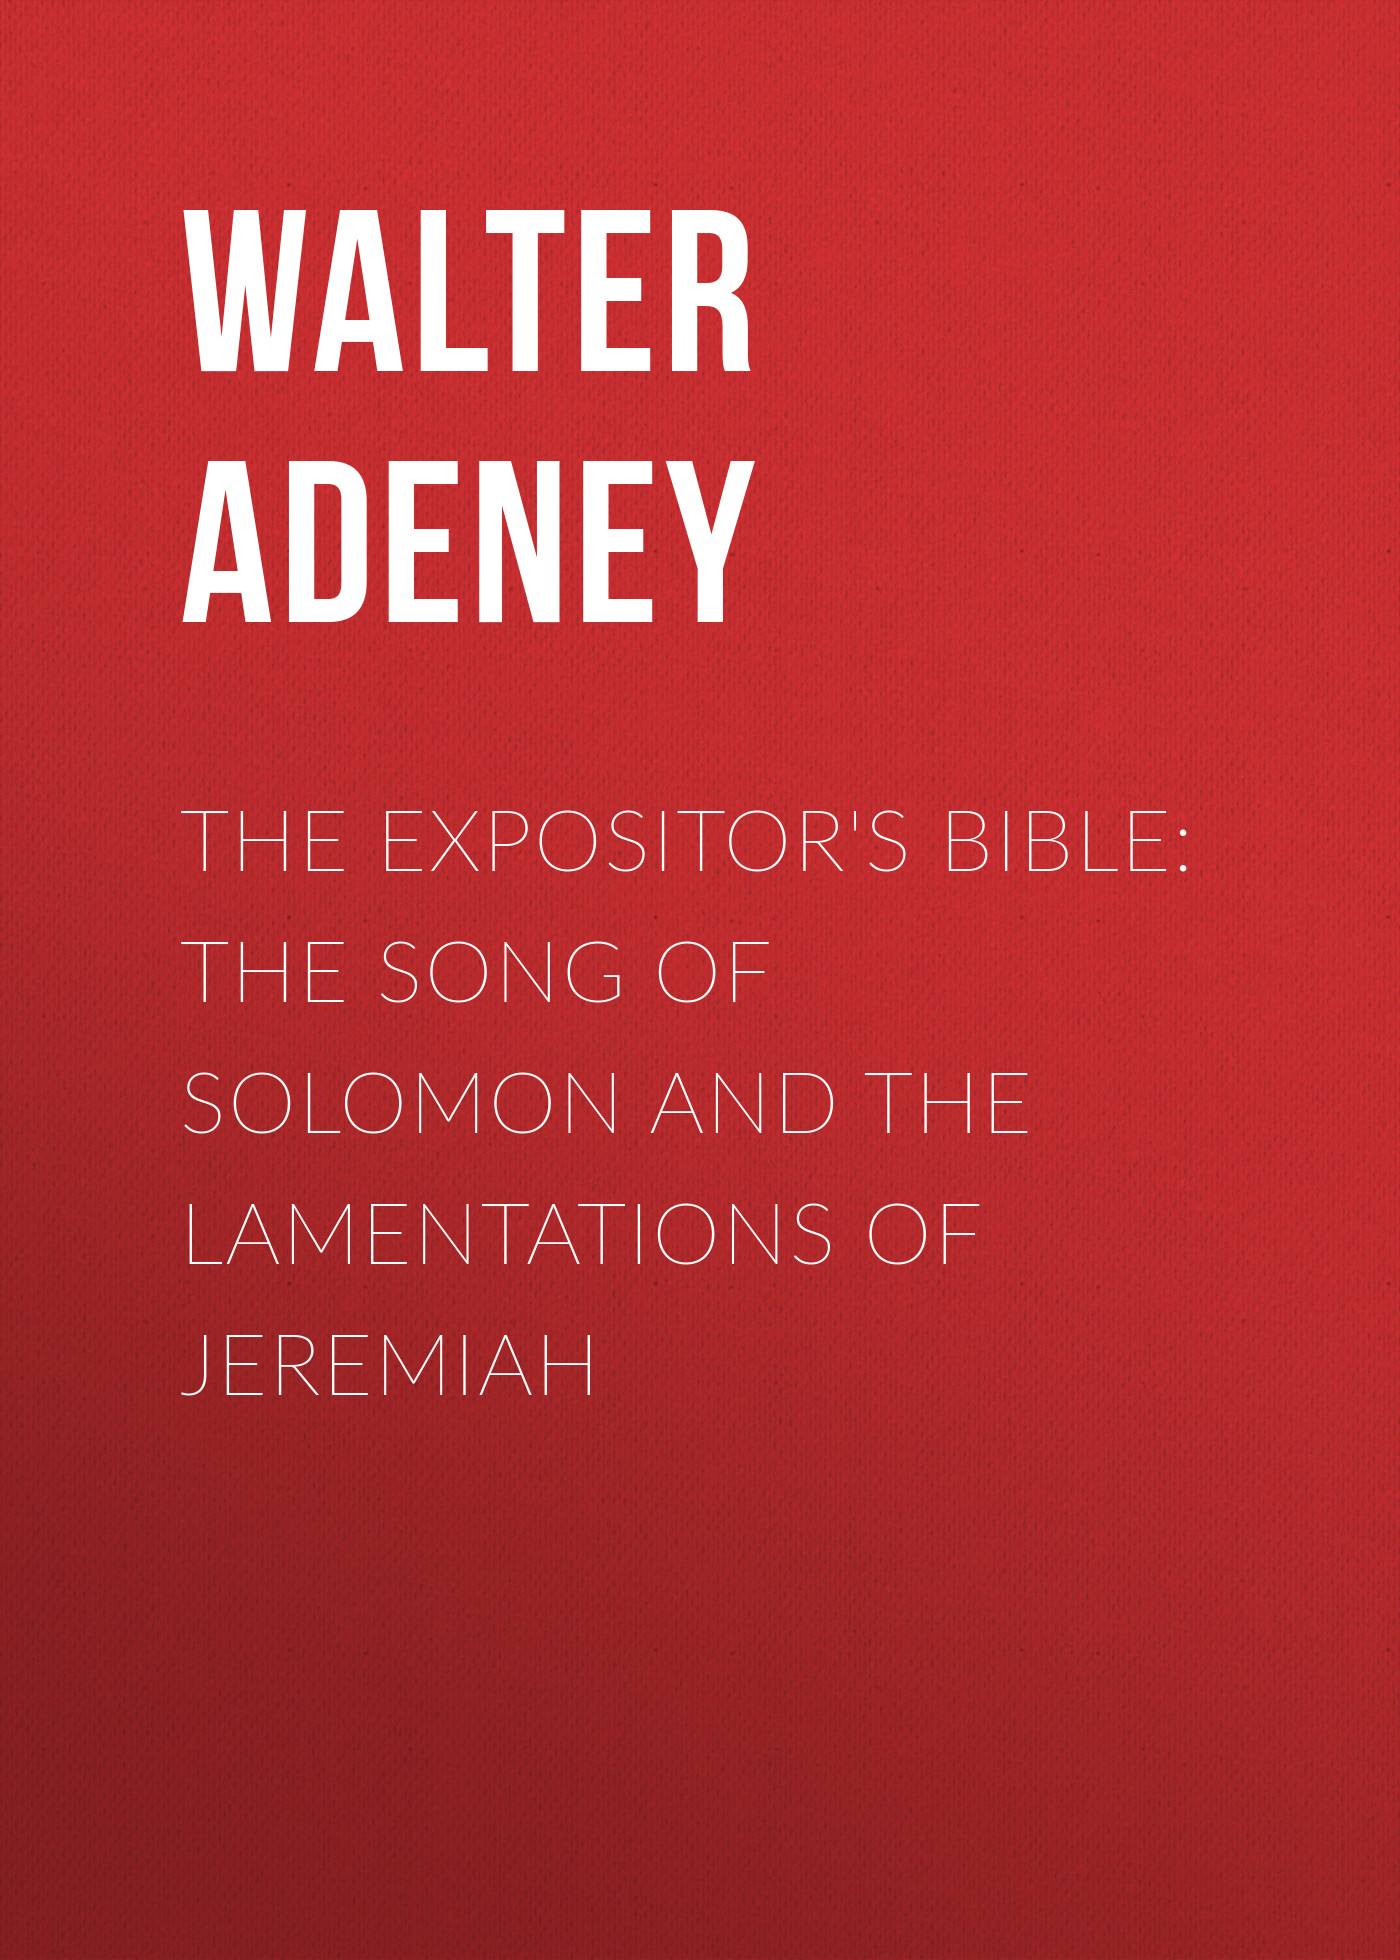 Adeney Walter Frederic The Expositor's Bible: The Song of Solomon and the Lamentations of Jeremiah kummer frederic arnold the ivory snuff box